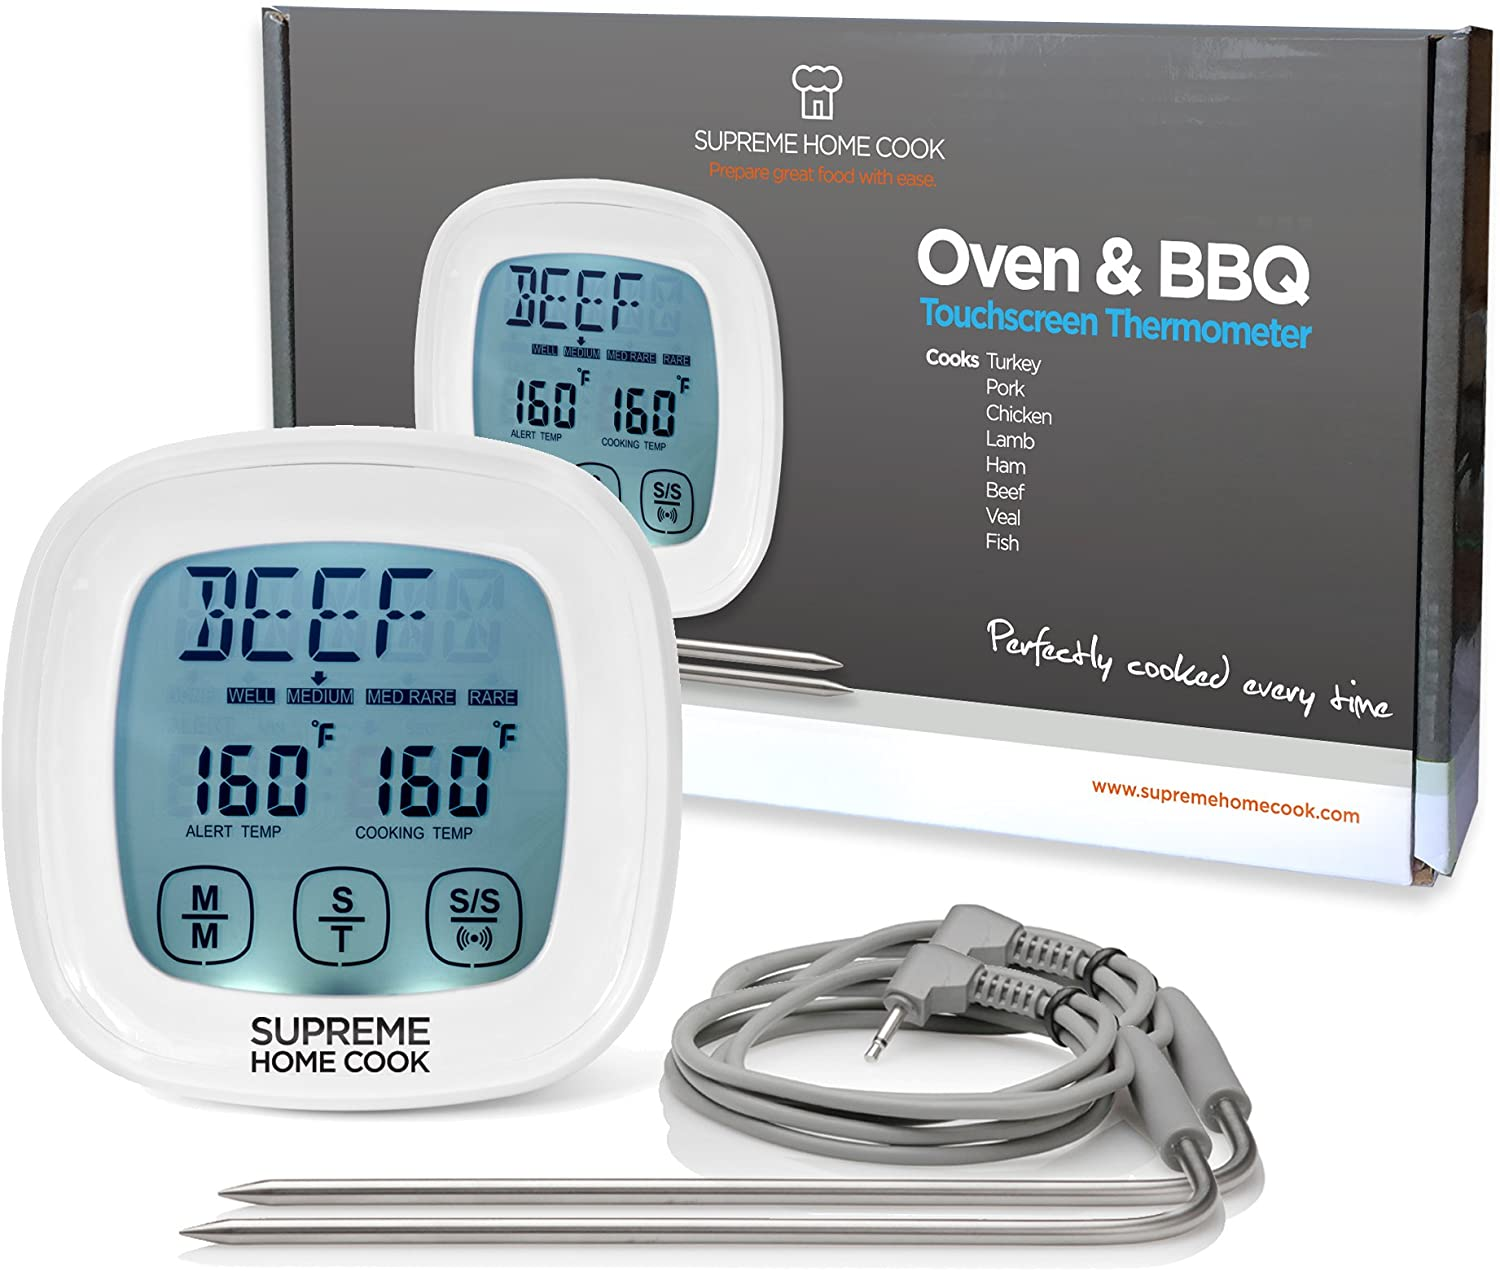 Supreme home cook oven & bbq touchscreen digital meat cooking thermometer and timer